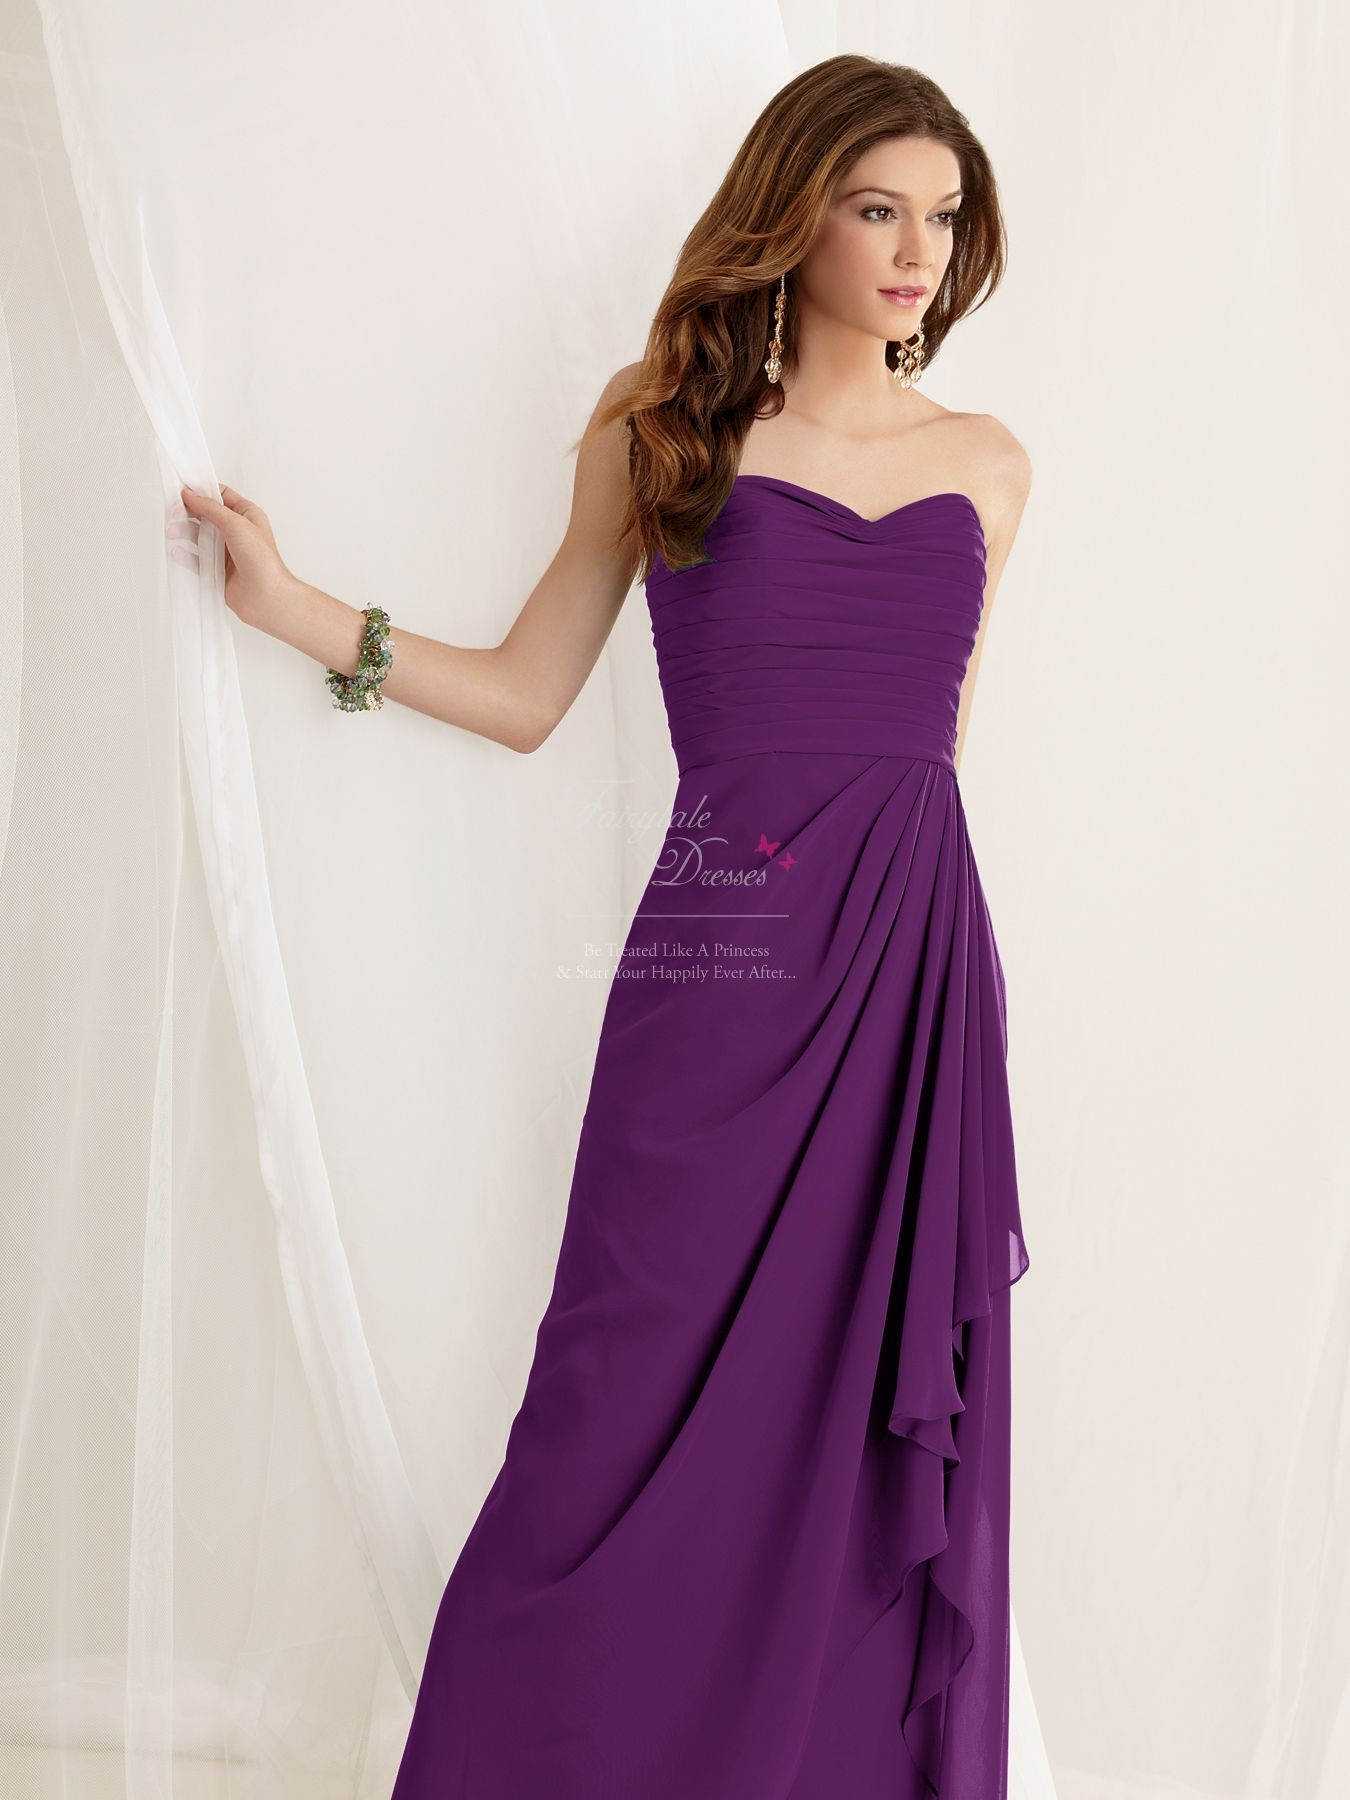 Dark purple bridesmaid dresses 12024 purple bridemaid dresses uk dark purple bridesmaid dresses 12024 purple bridemaid dresses uk ombrellifo Images